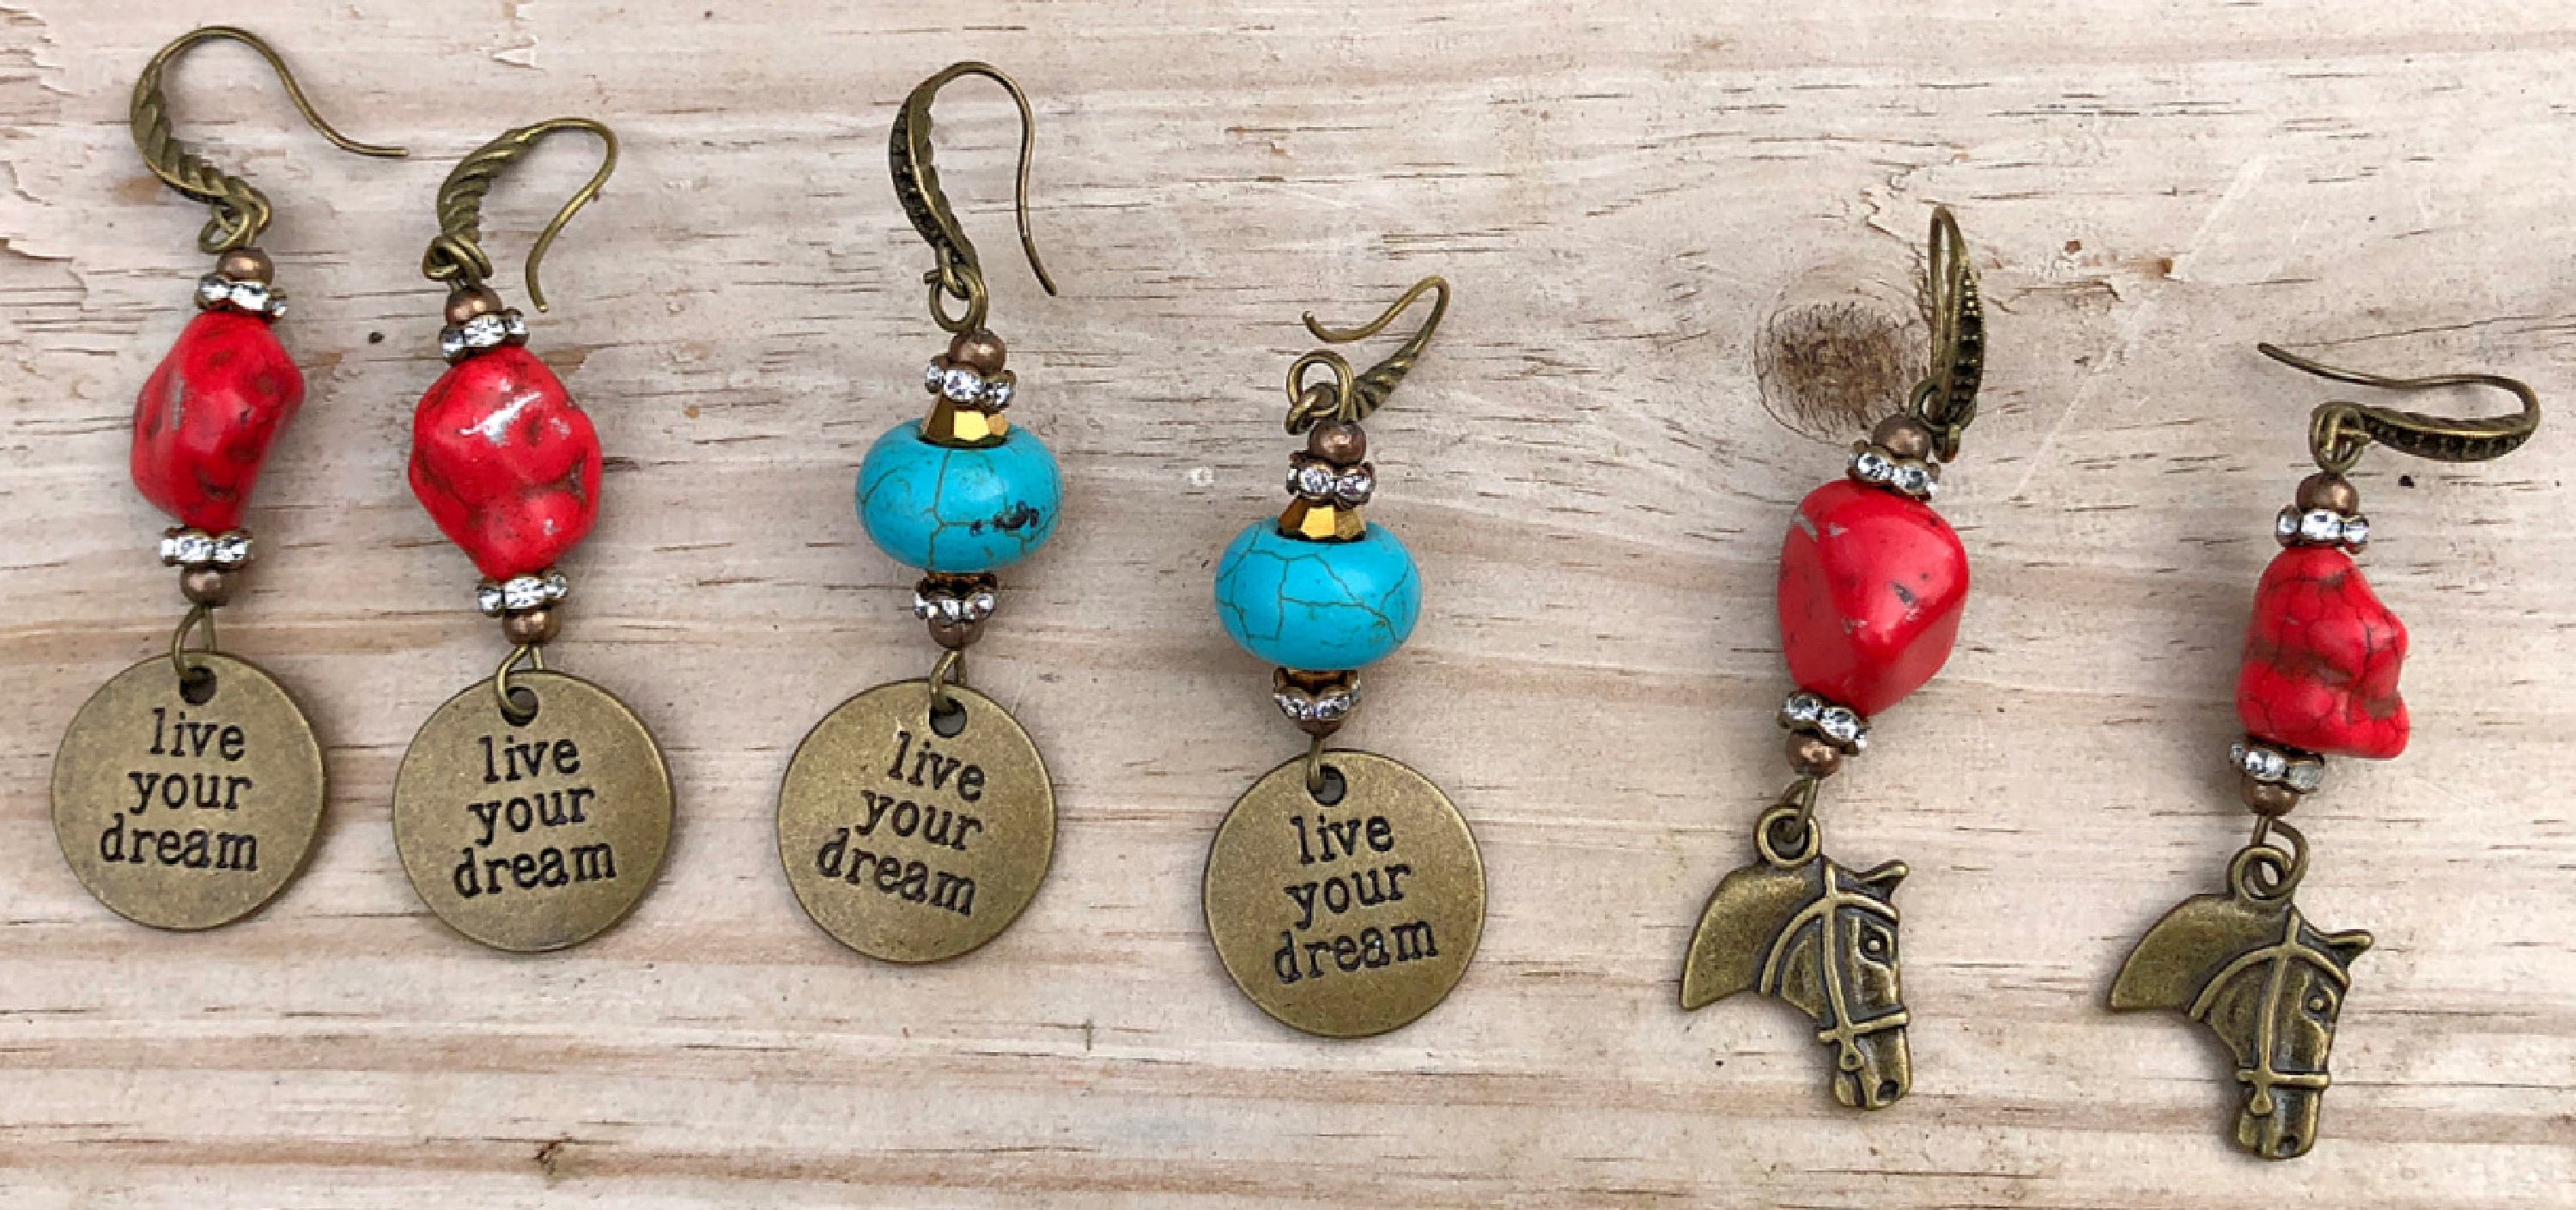 LIVE YOUR DREAM EARRINGS Handmade Turquoise Antique Bronze Horse Quote Rhinestone Charm Vintage Western Dangle Earrings 2 COLORS & 3 STYLES